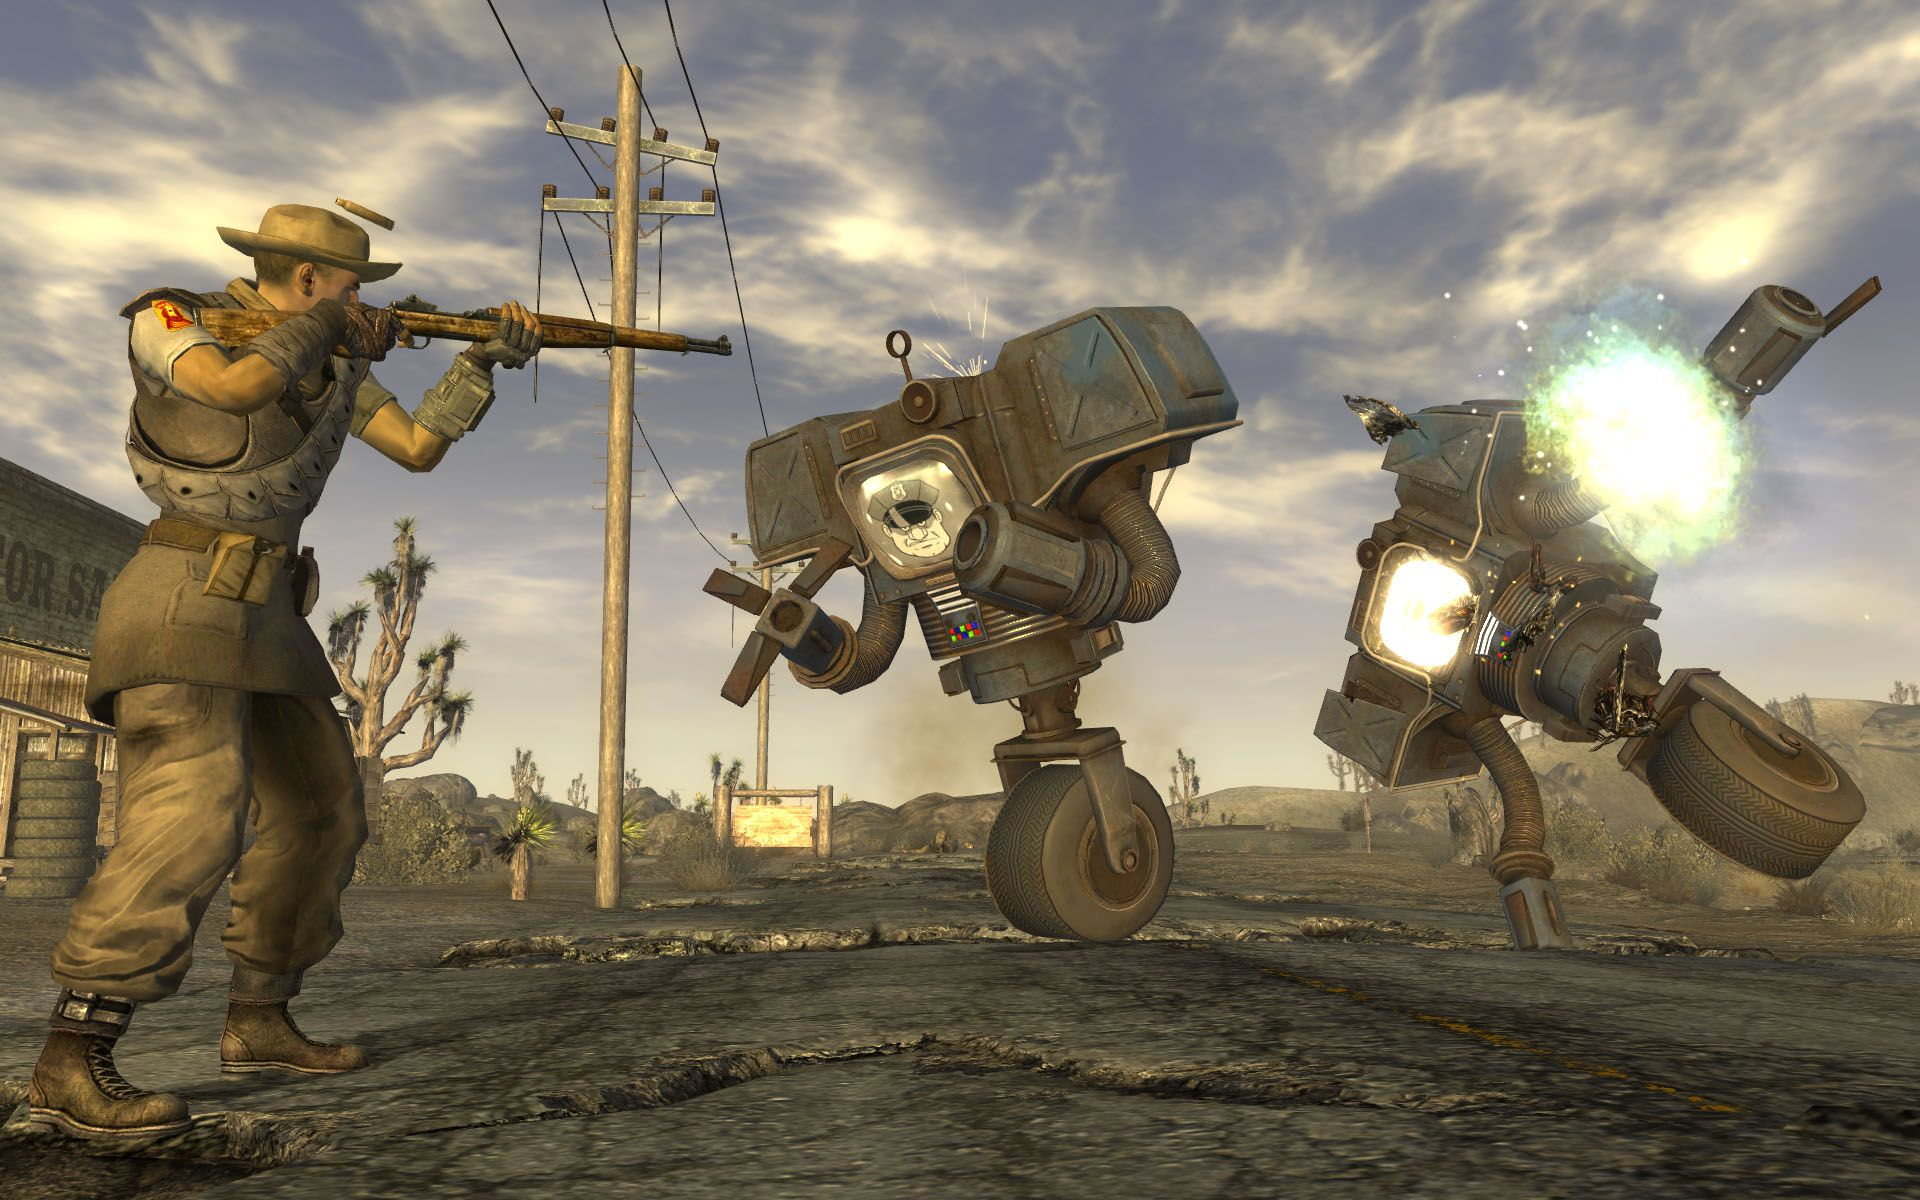 A screenshot of a man shooting two robots in Fallout: New Vegas.